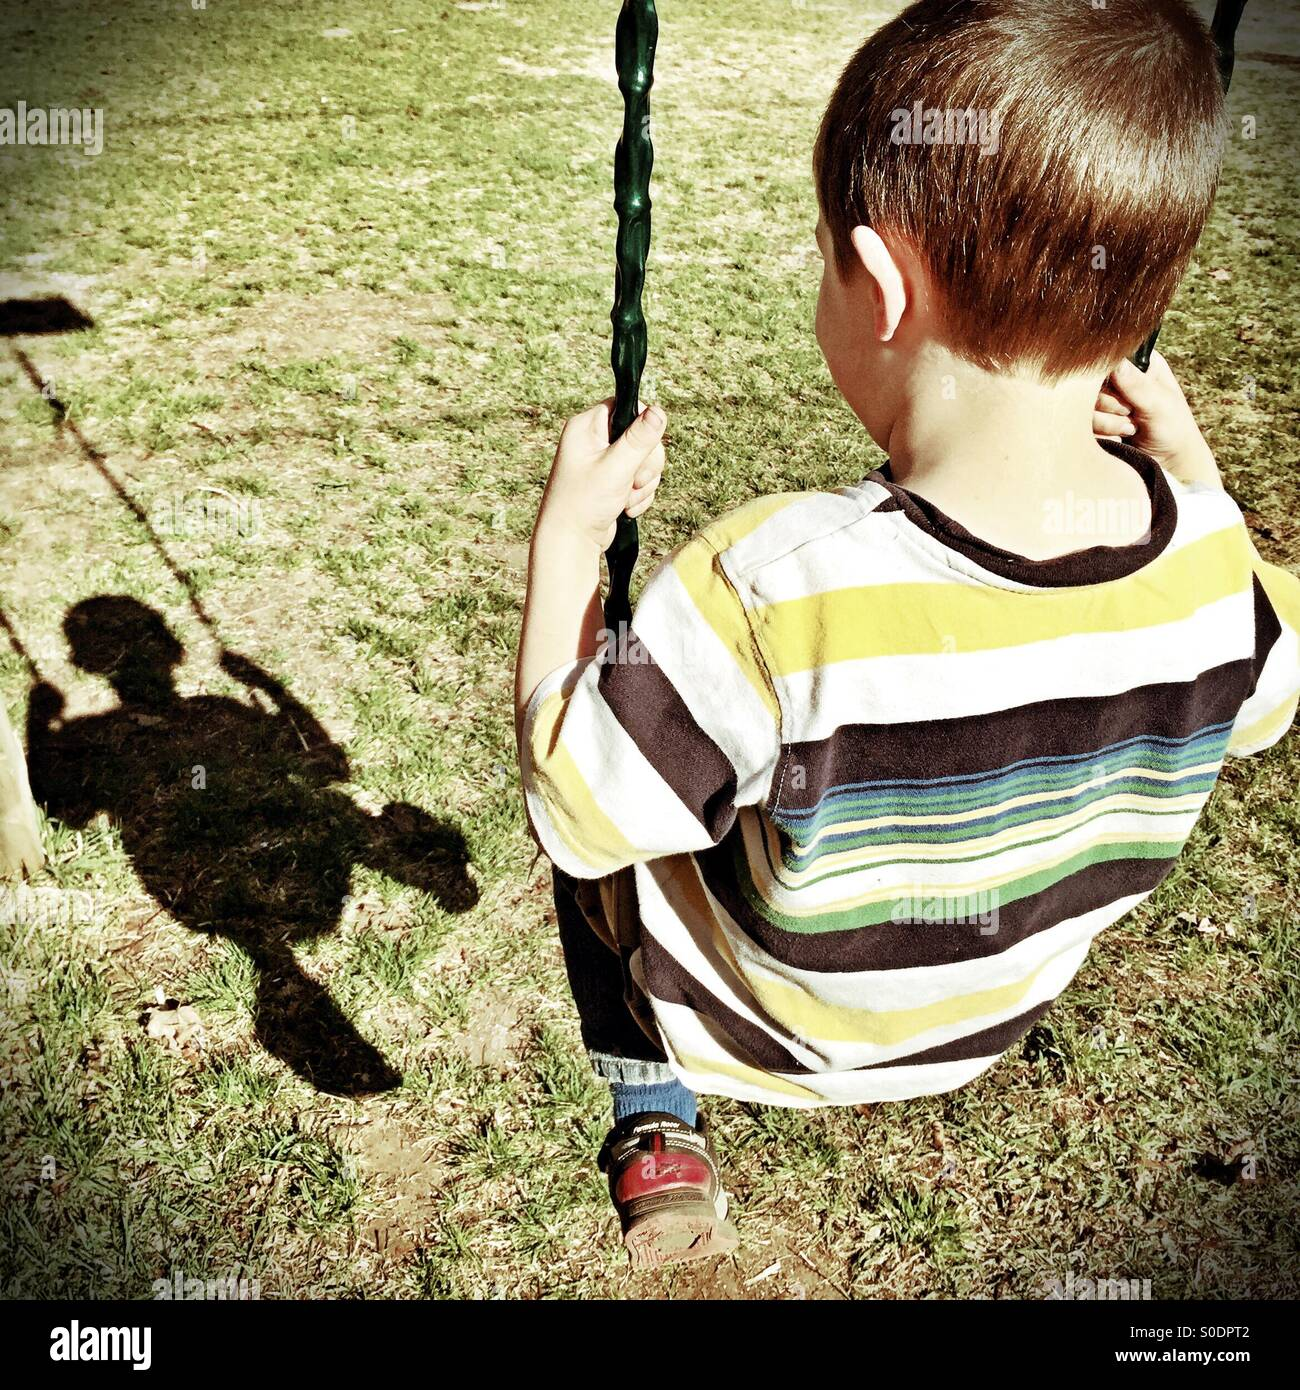 Young boy swings and admires his shadow image - Stock Image